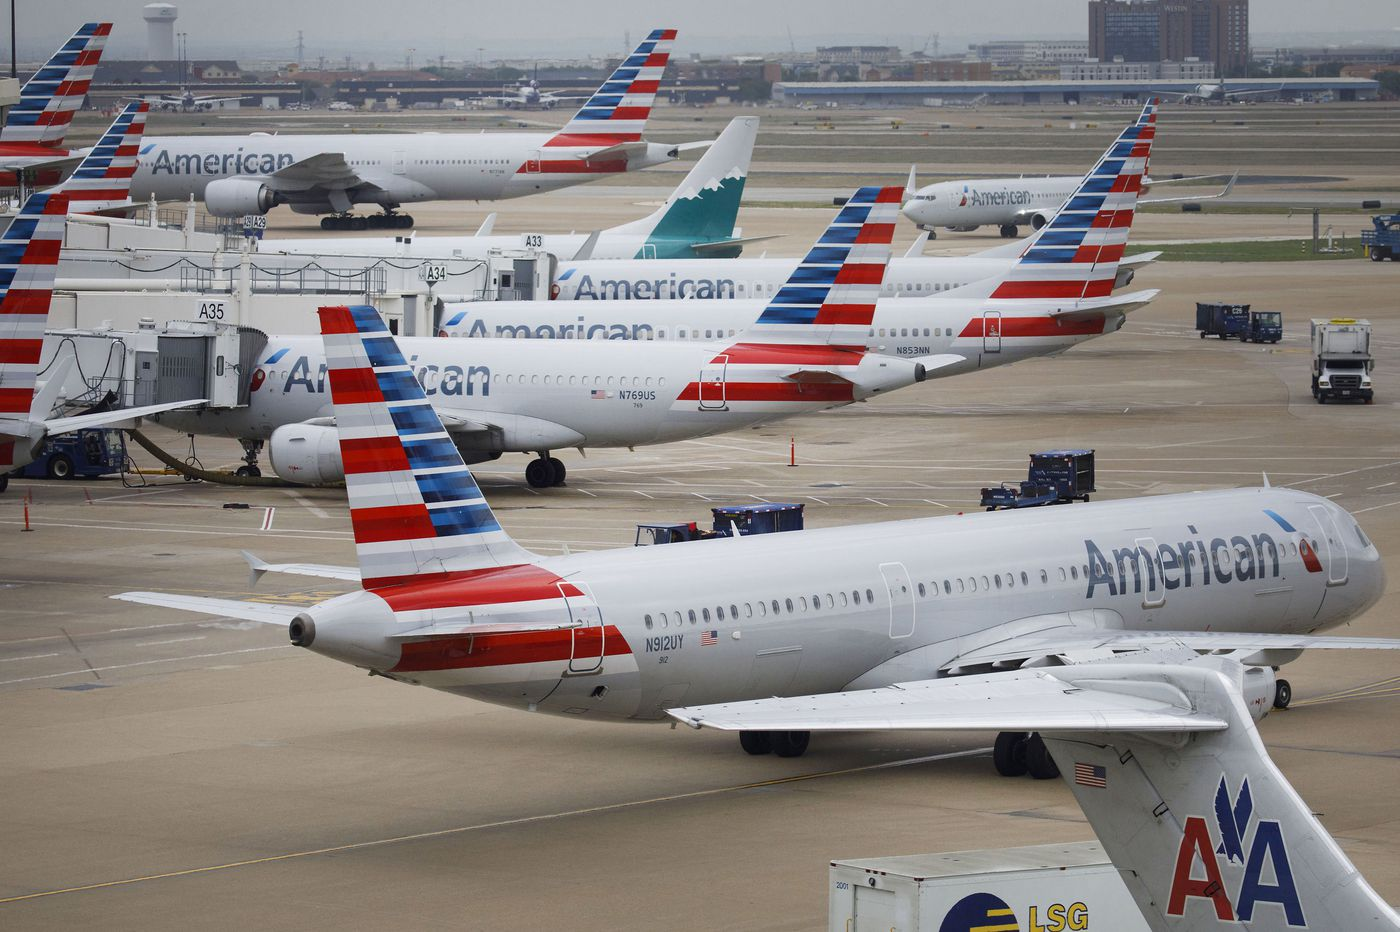 American Airlines suspends flights to Venezuela